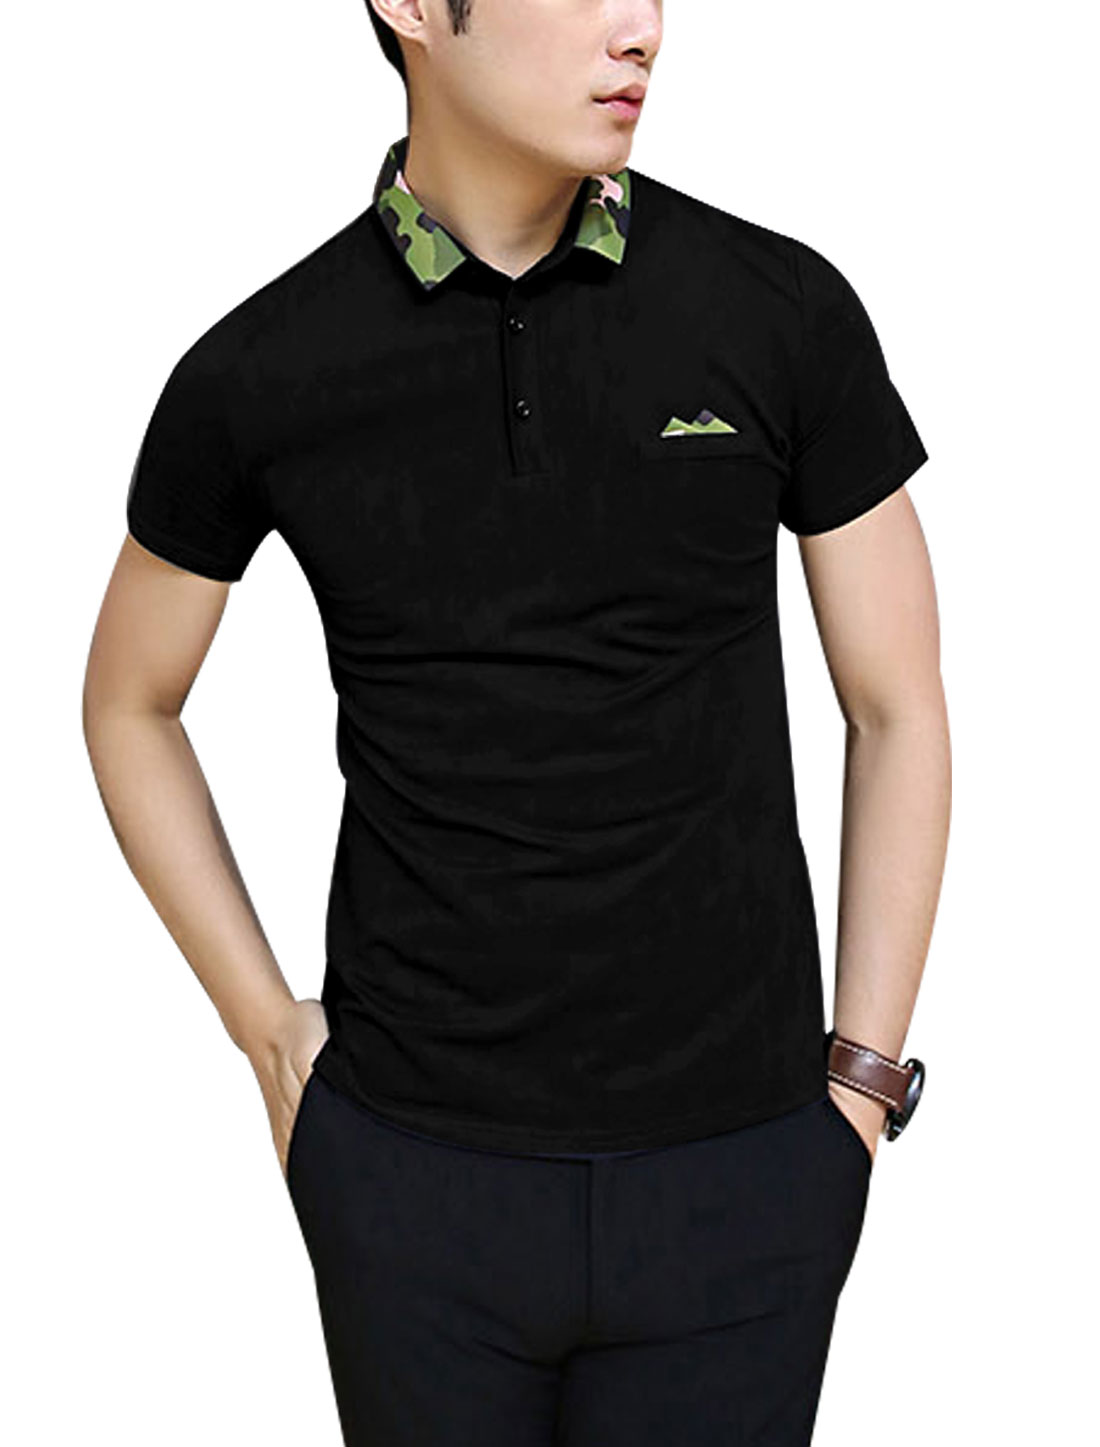 Men New Style Point Collar Camouflage Prints Polo Shirt Black M